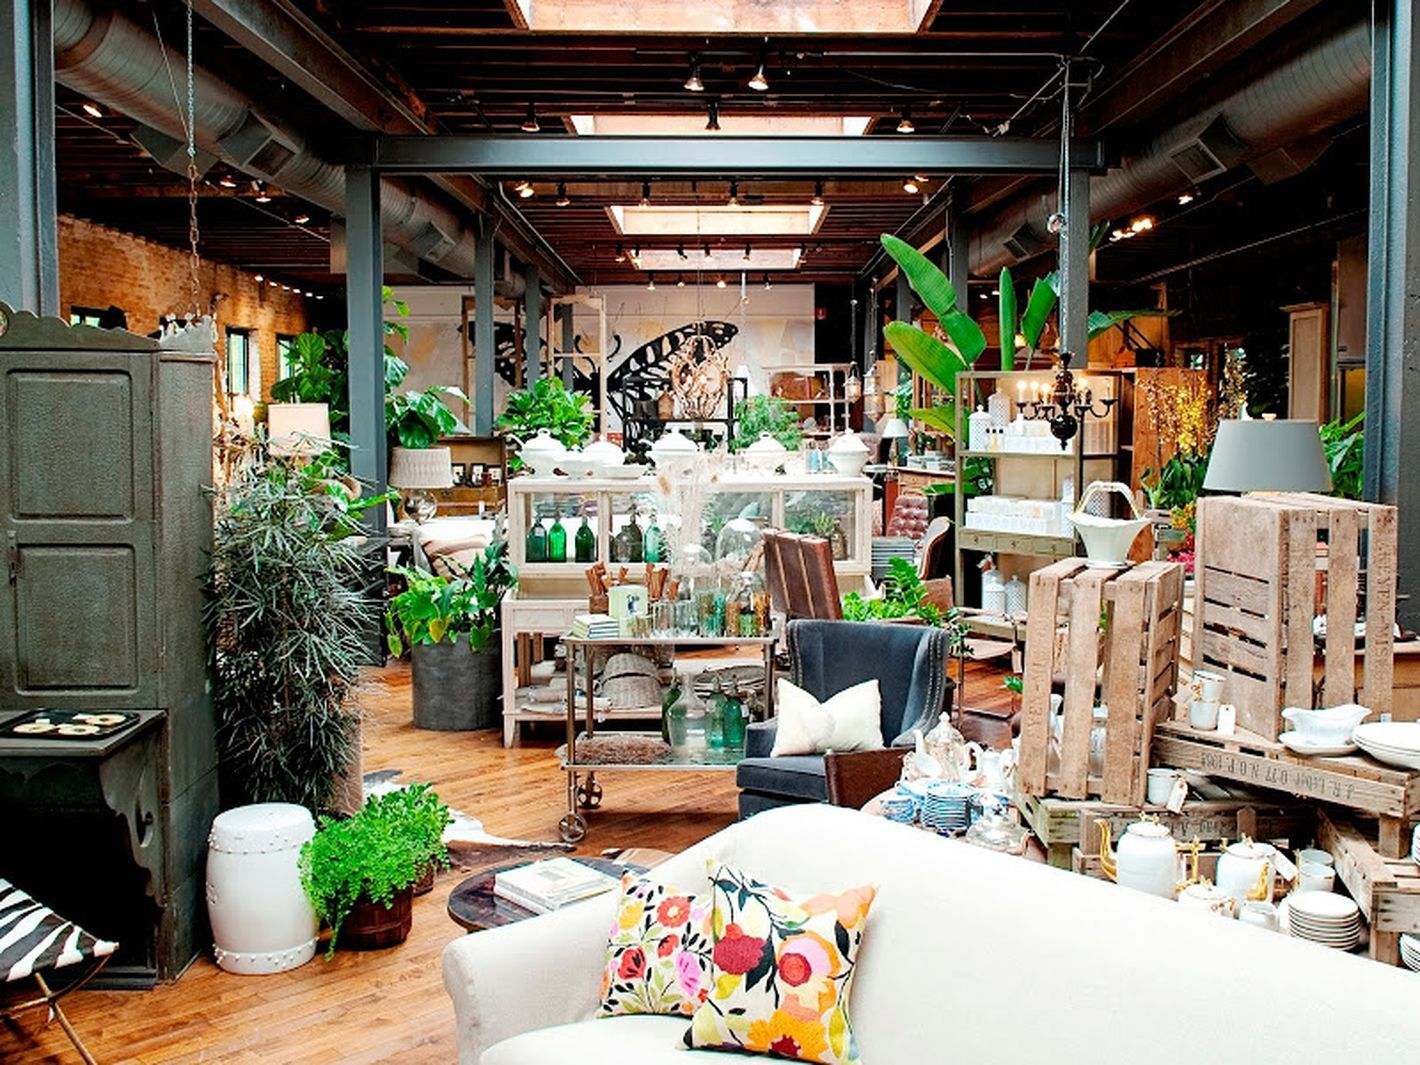 Chicago S 38 Best Home Goods And Furniture Stores Sweet Home Alabama Movie Sweet Home Design Chi S Sweet Home